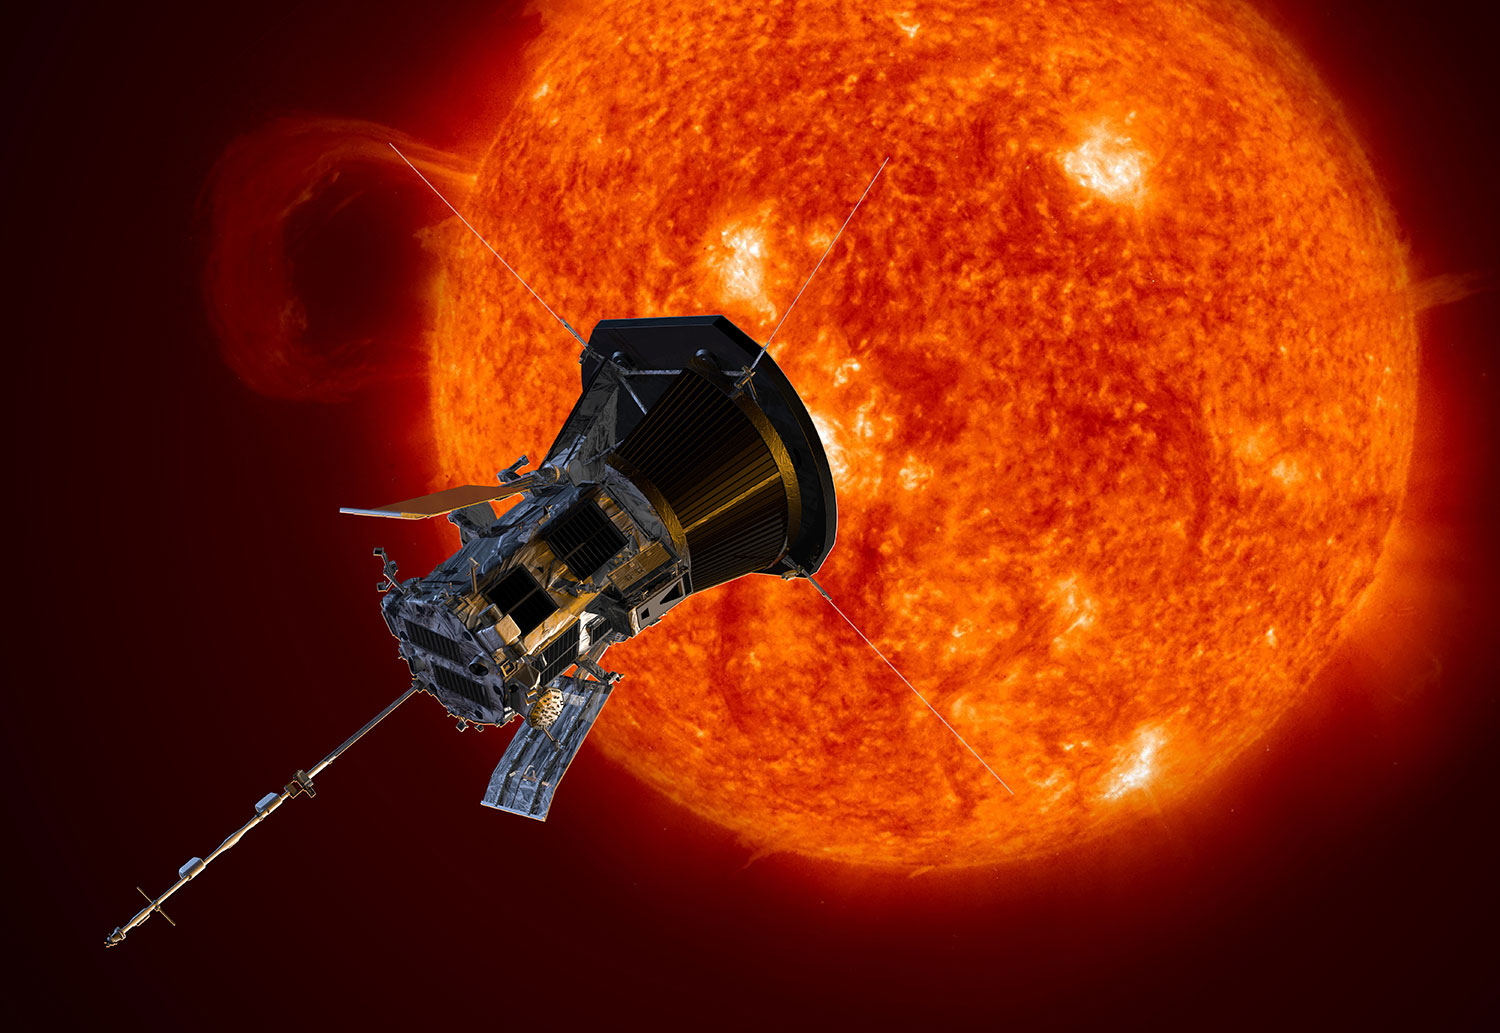 Artist's impression of NASA's Parker Solar Probe spacecraft on approach to the Sun